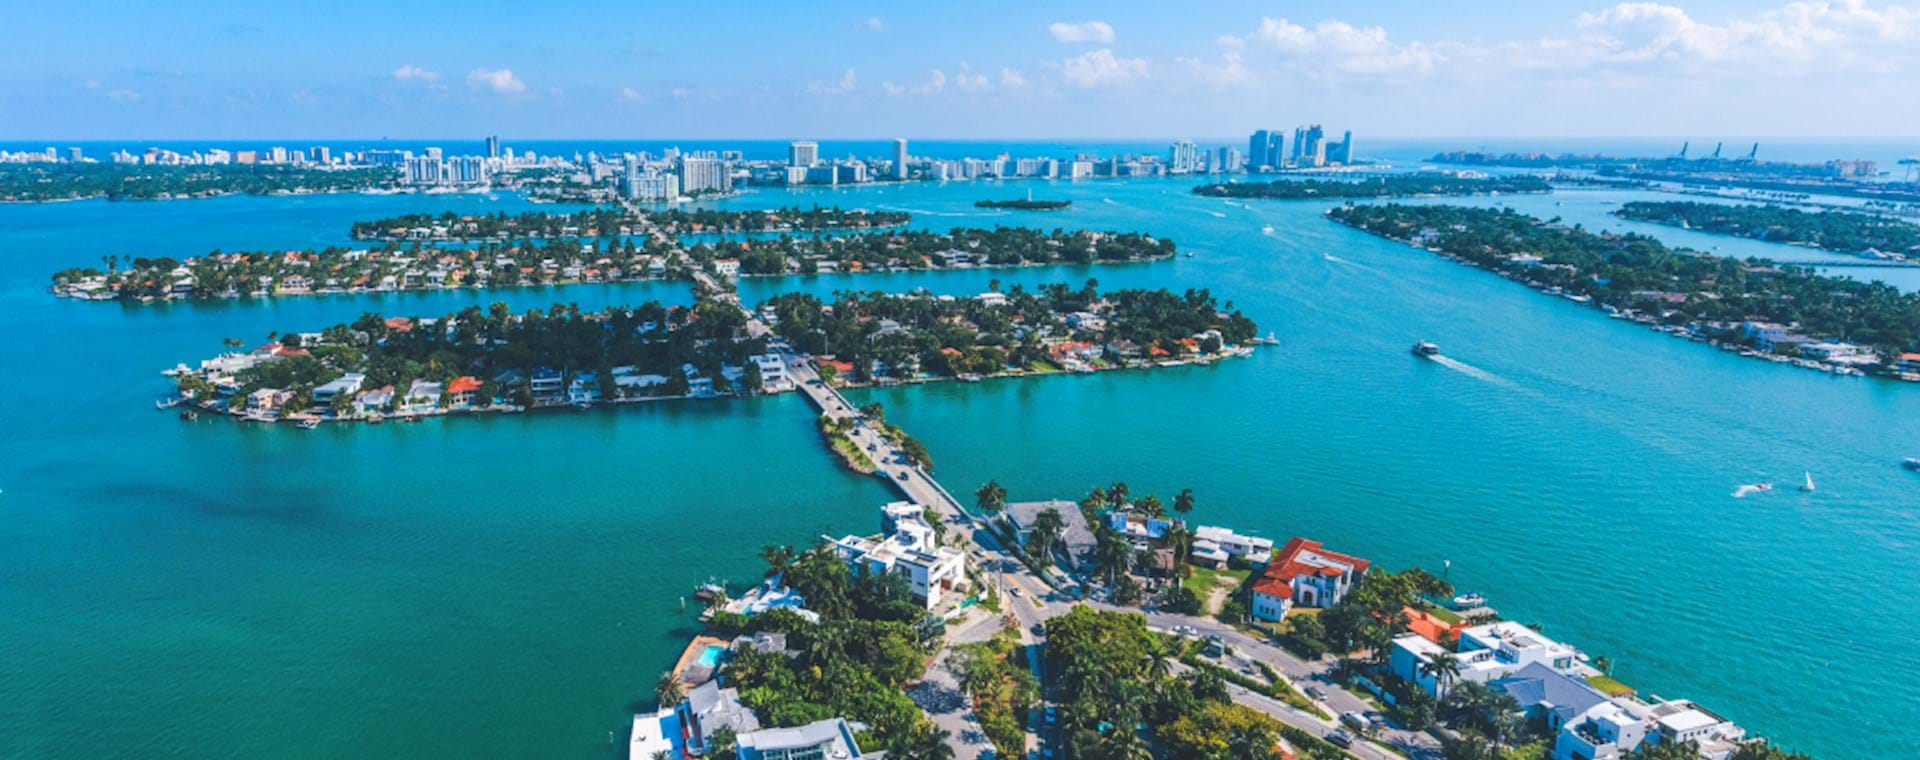 Miami Islands seen from helicopter